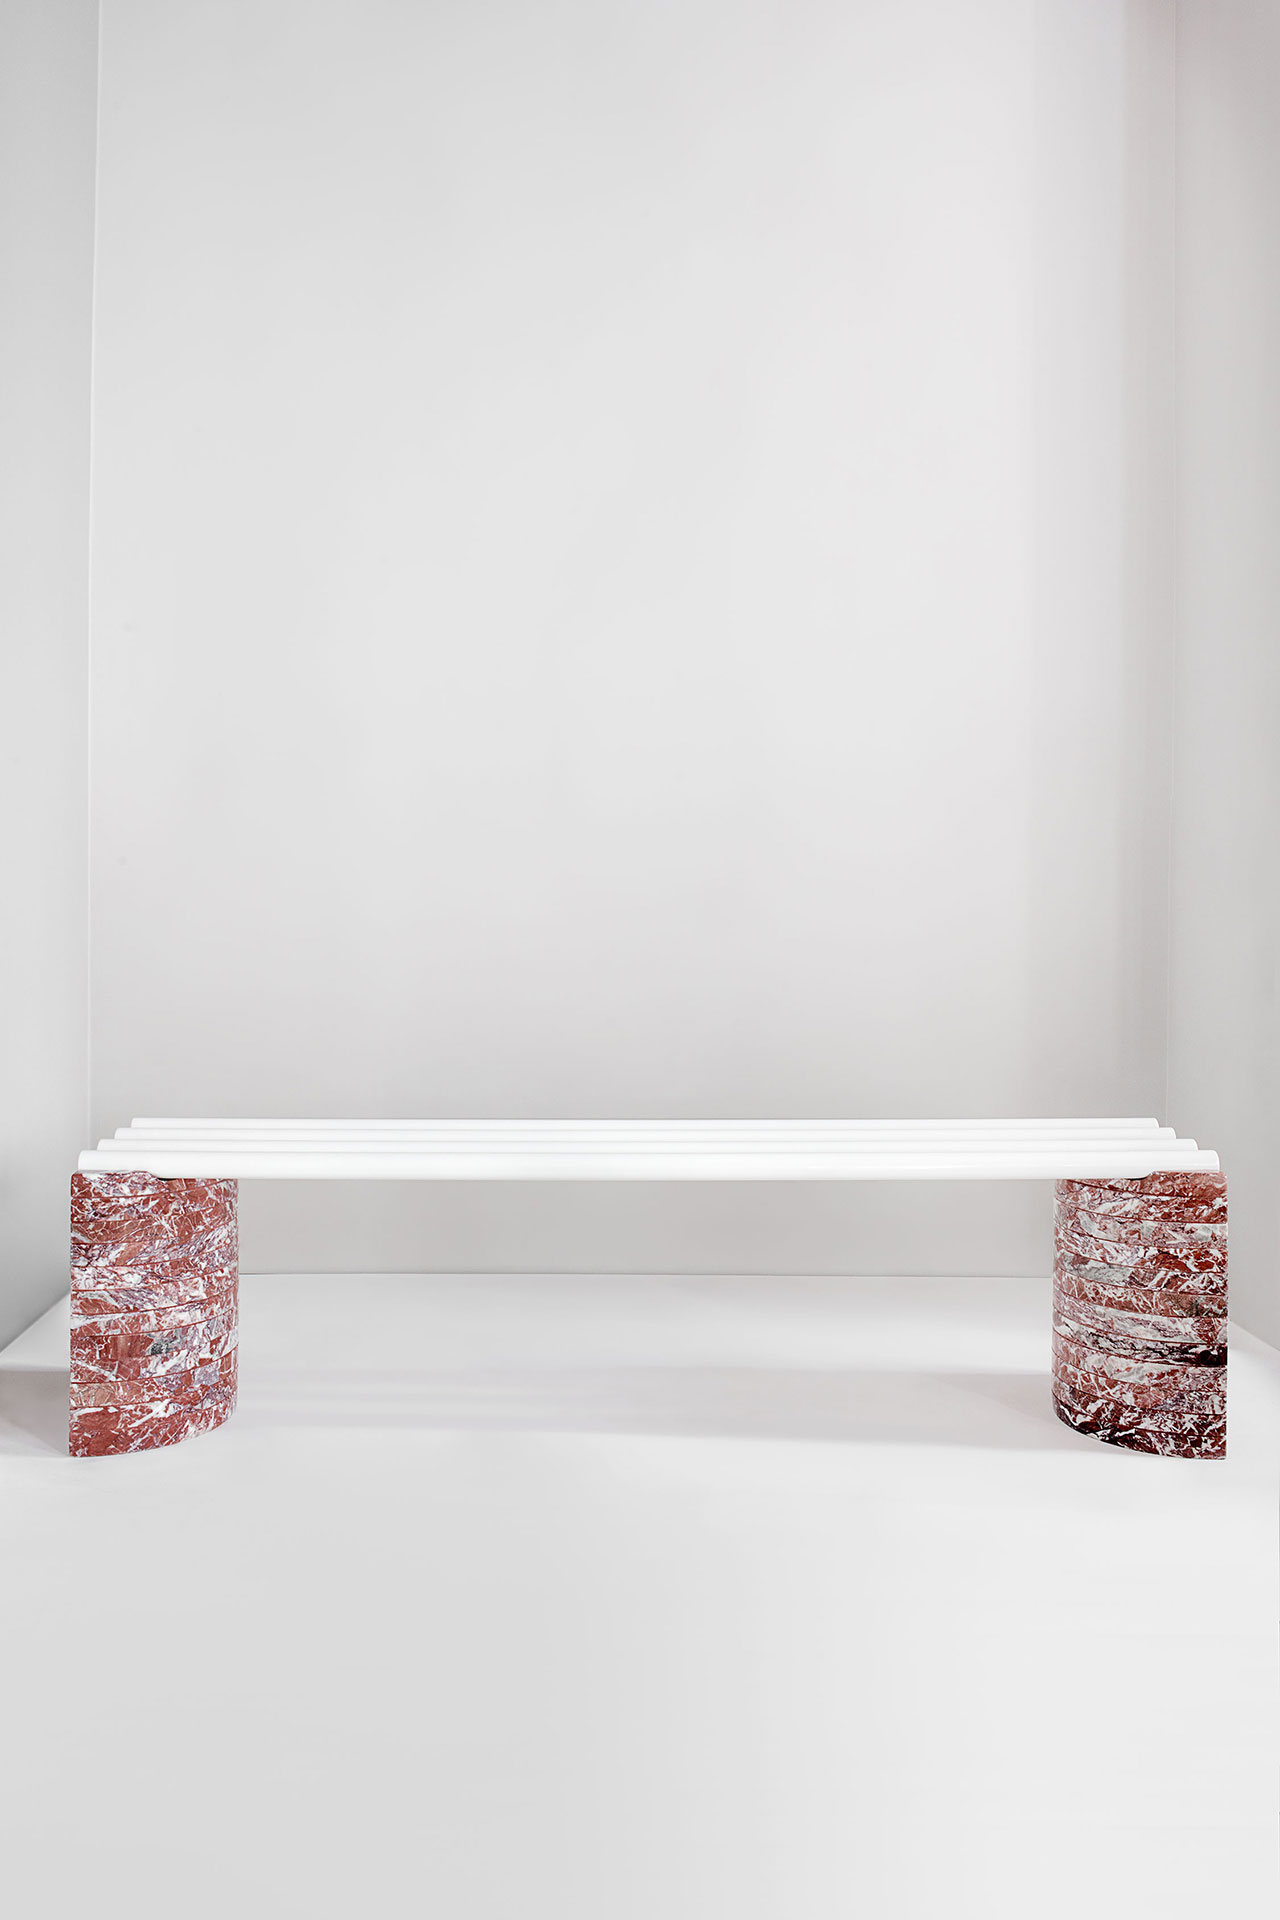 Objects of Common Interest, Parallel Bench, 2016. Marble, Steel Tubes. Photo by Matthieu Salvaing.